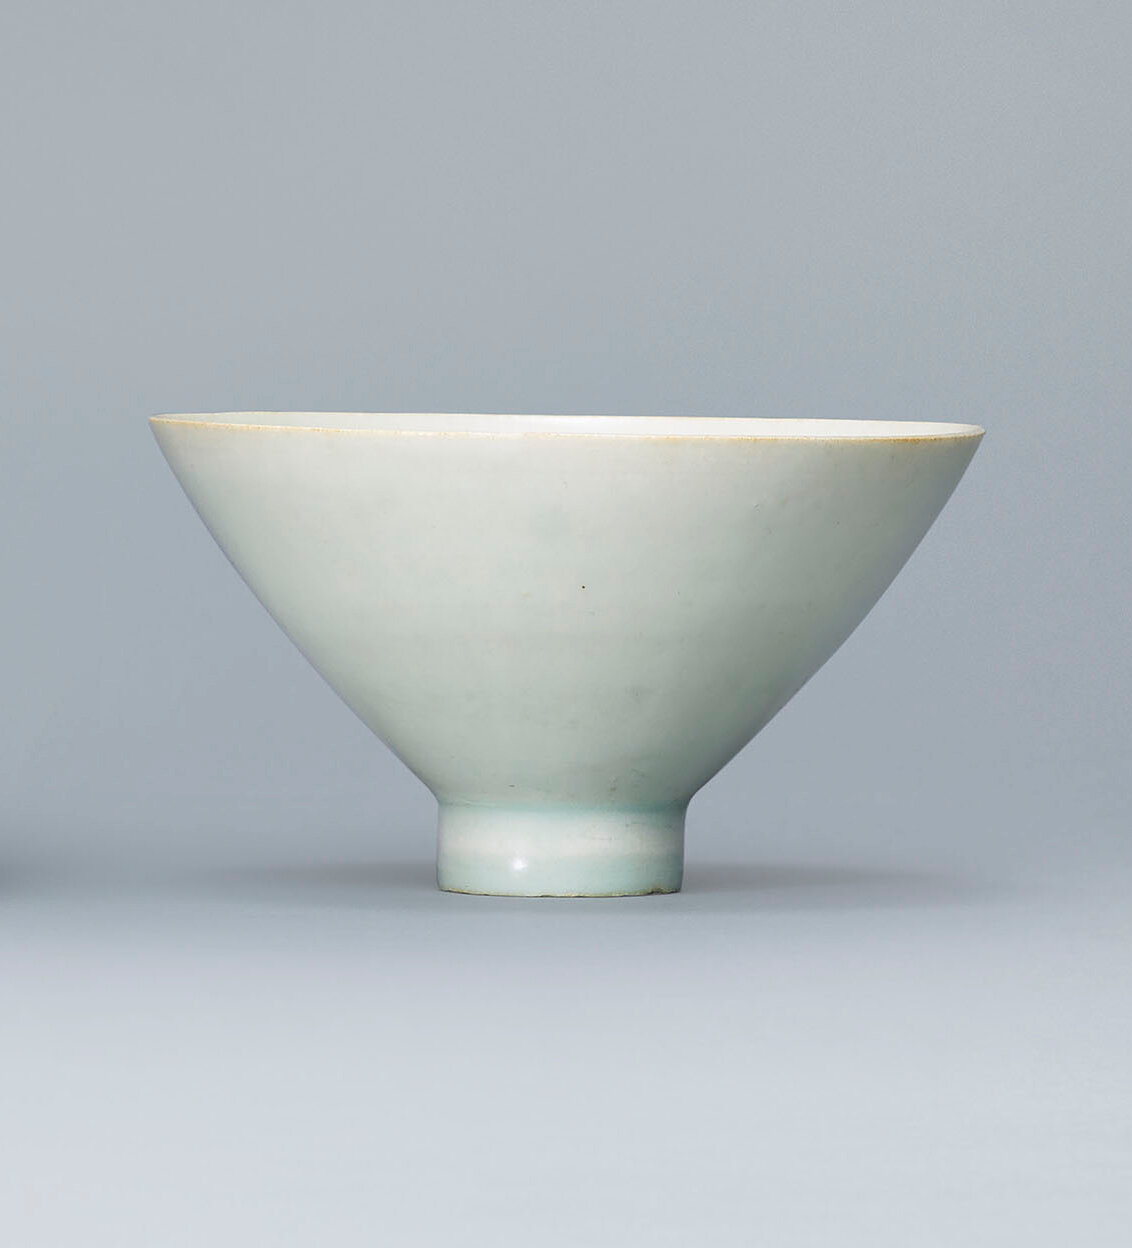 A Qingbai conical bowl, Northern Song dynasty (960-1127)